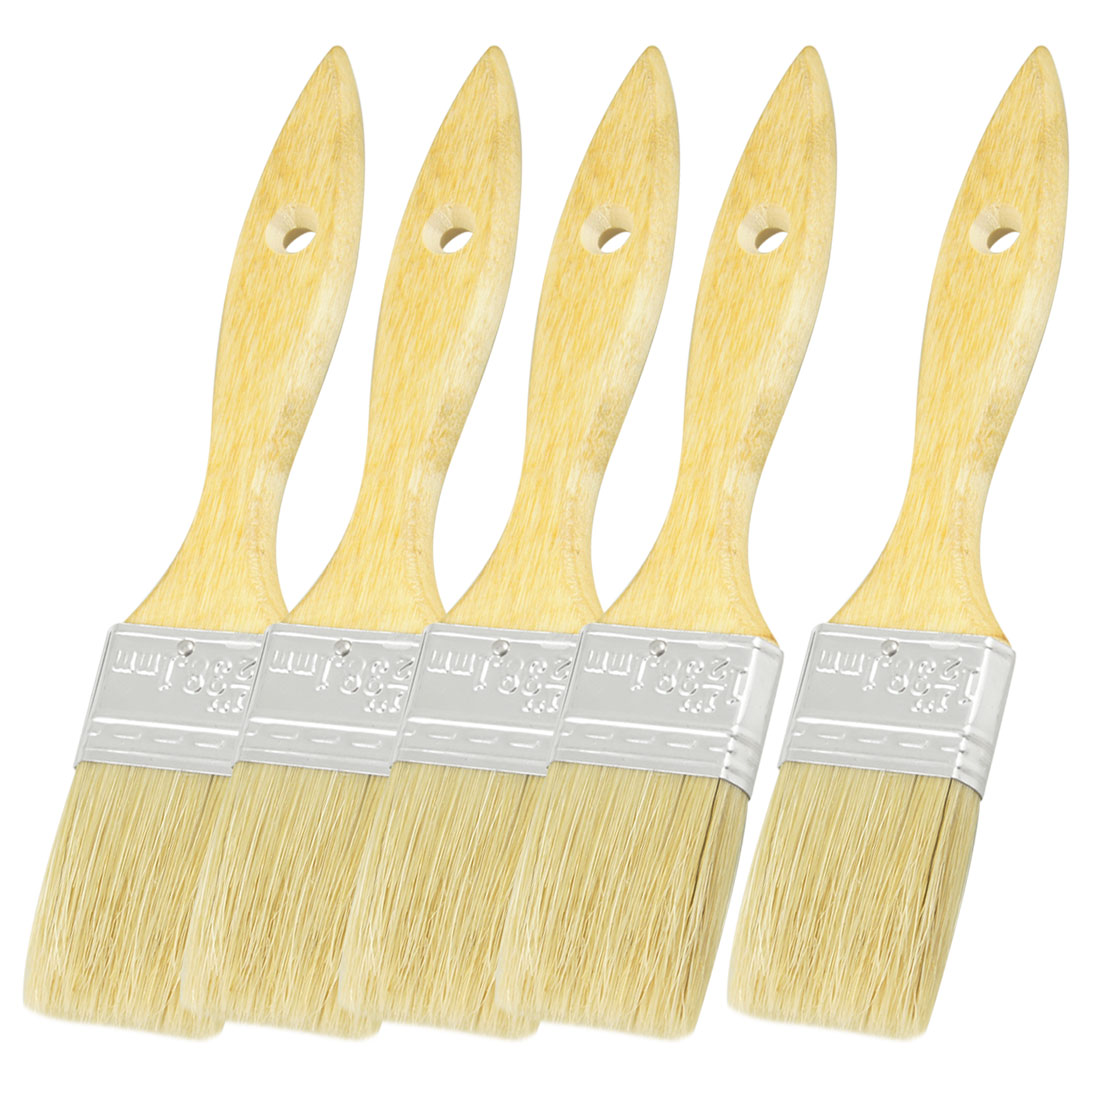 Furniture Painting Bristle Hair Wooden Handle Paint Brush 1.5 Inch Wide 5pcs